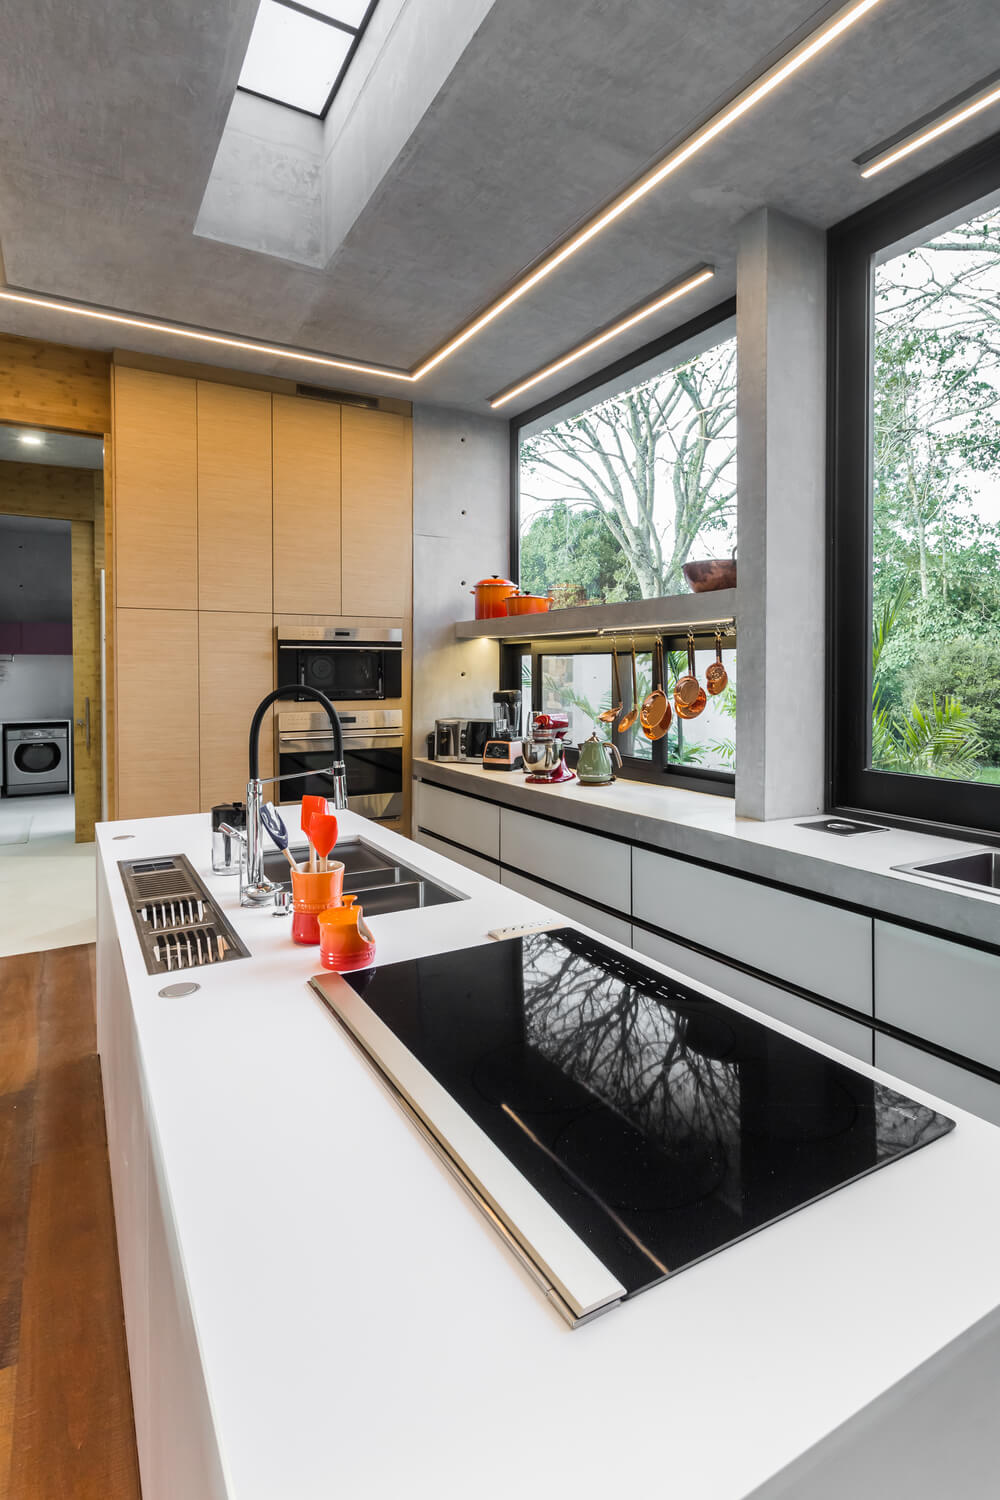 This is a look at the bright and airy kitchen that has lots of natural lighting from the glass windows.